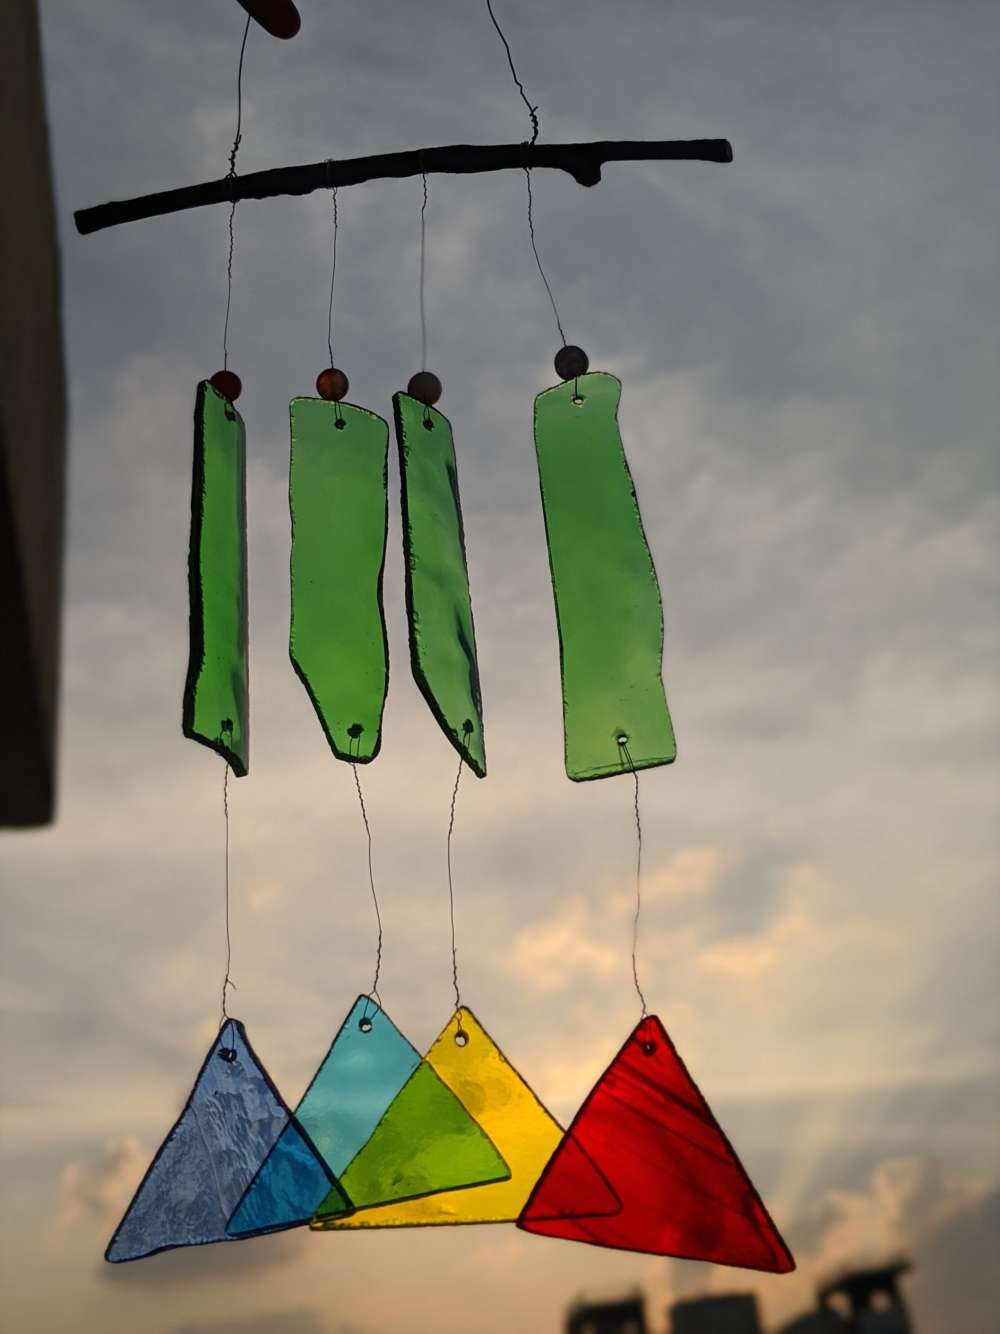 Upcycled prism stained glass suncatcher hanging